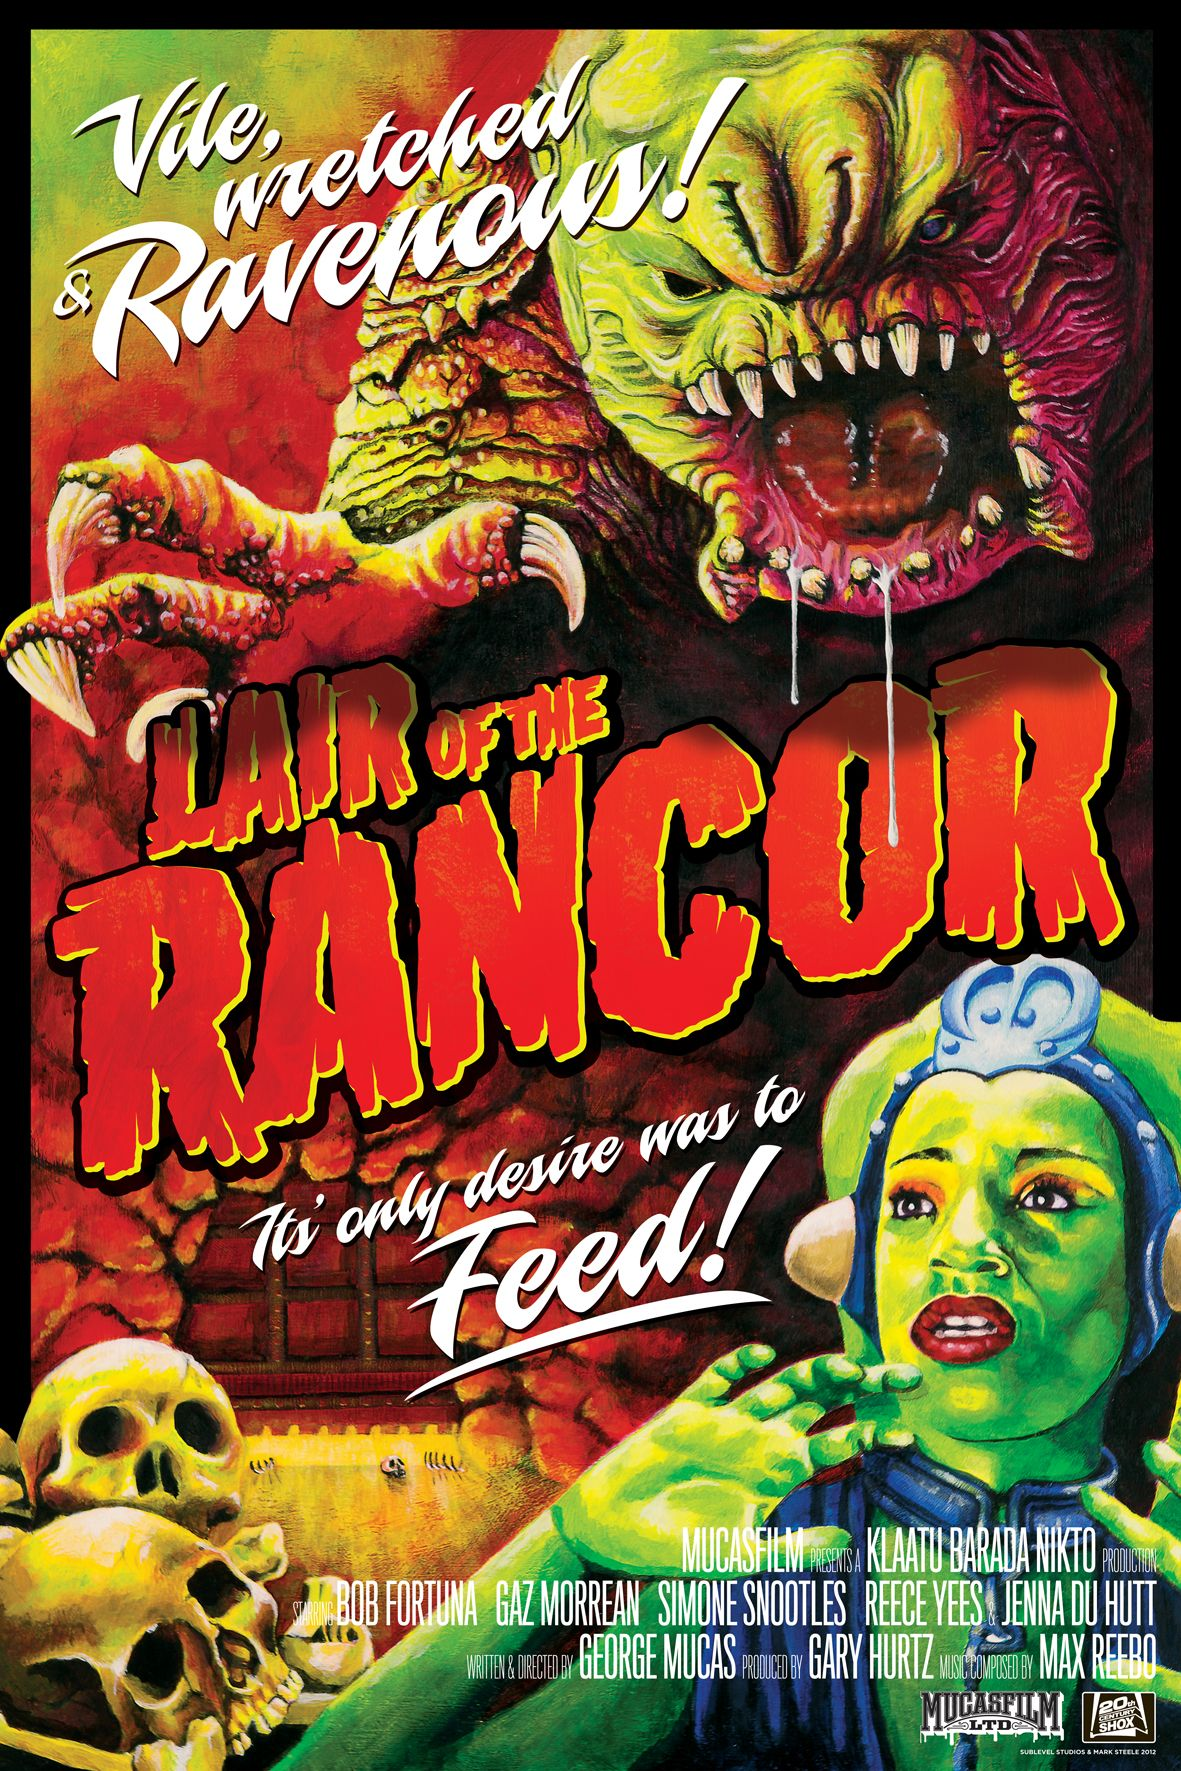 Star Wars-inspired horror film called Lair of the Rancor